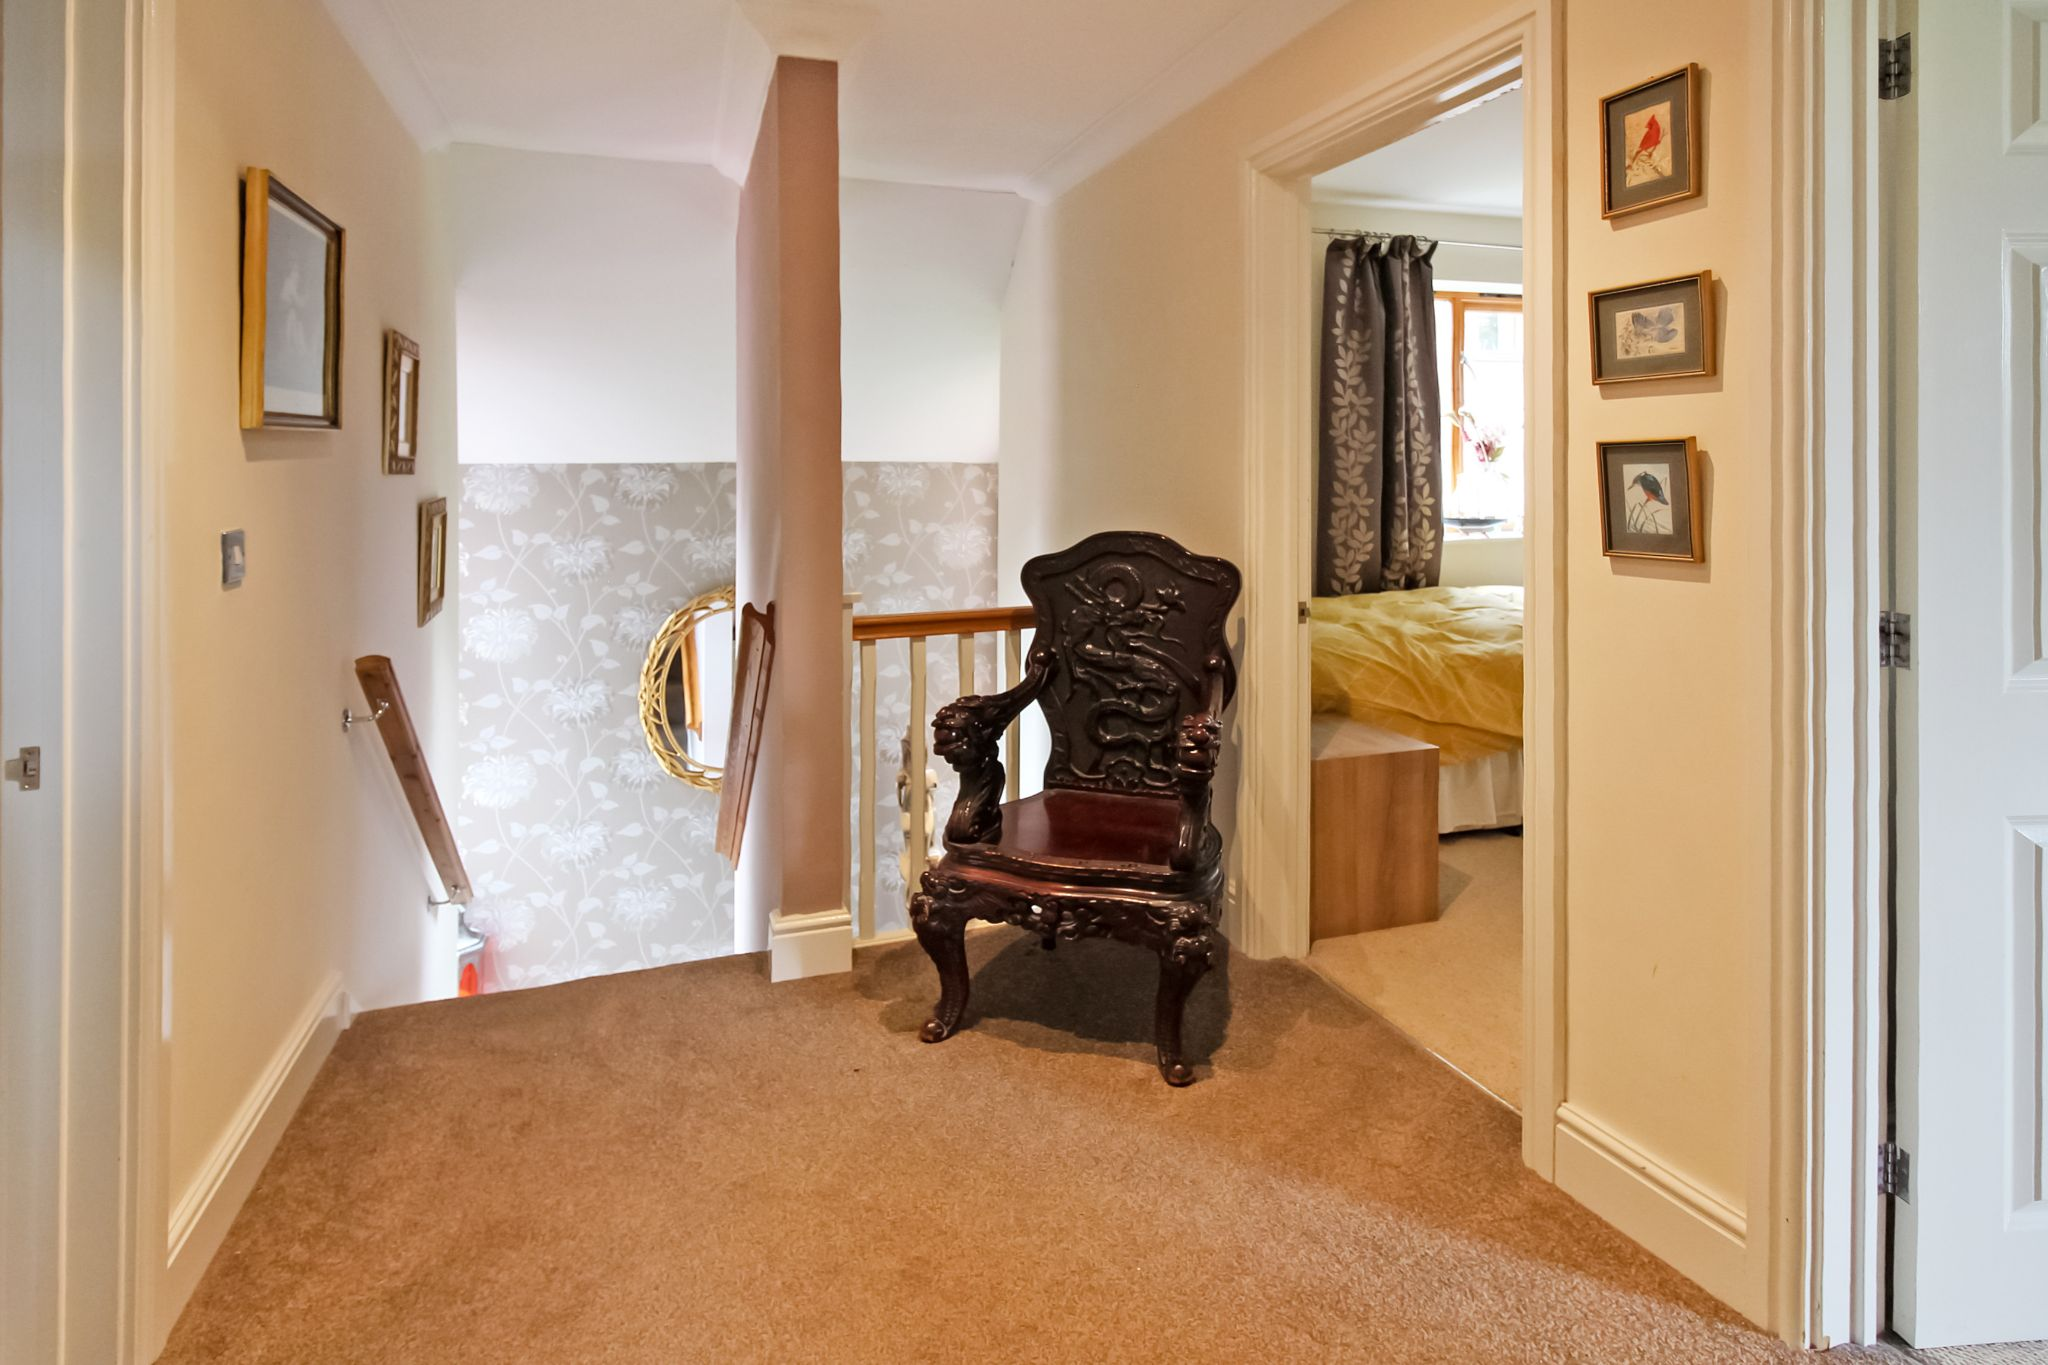 3 bedroom semi-detached house SSTC in Solihull - Photograph 9.